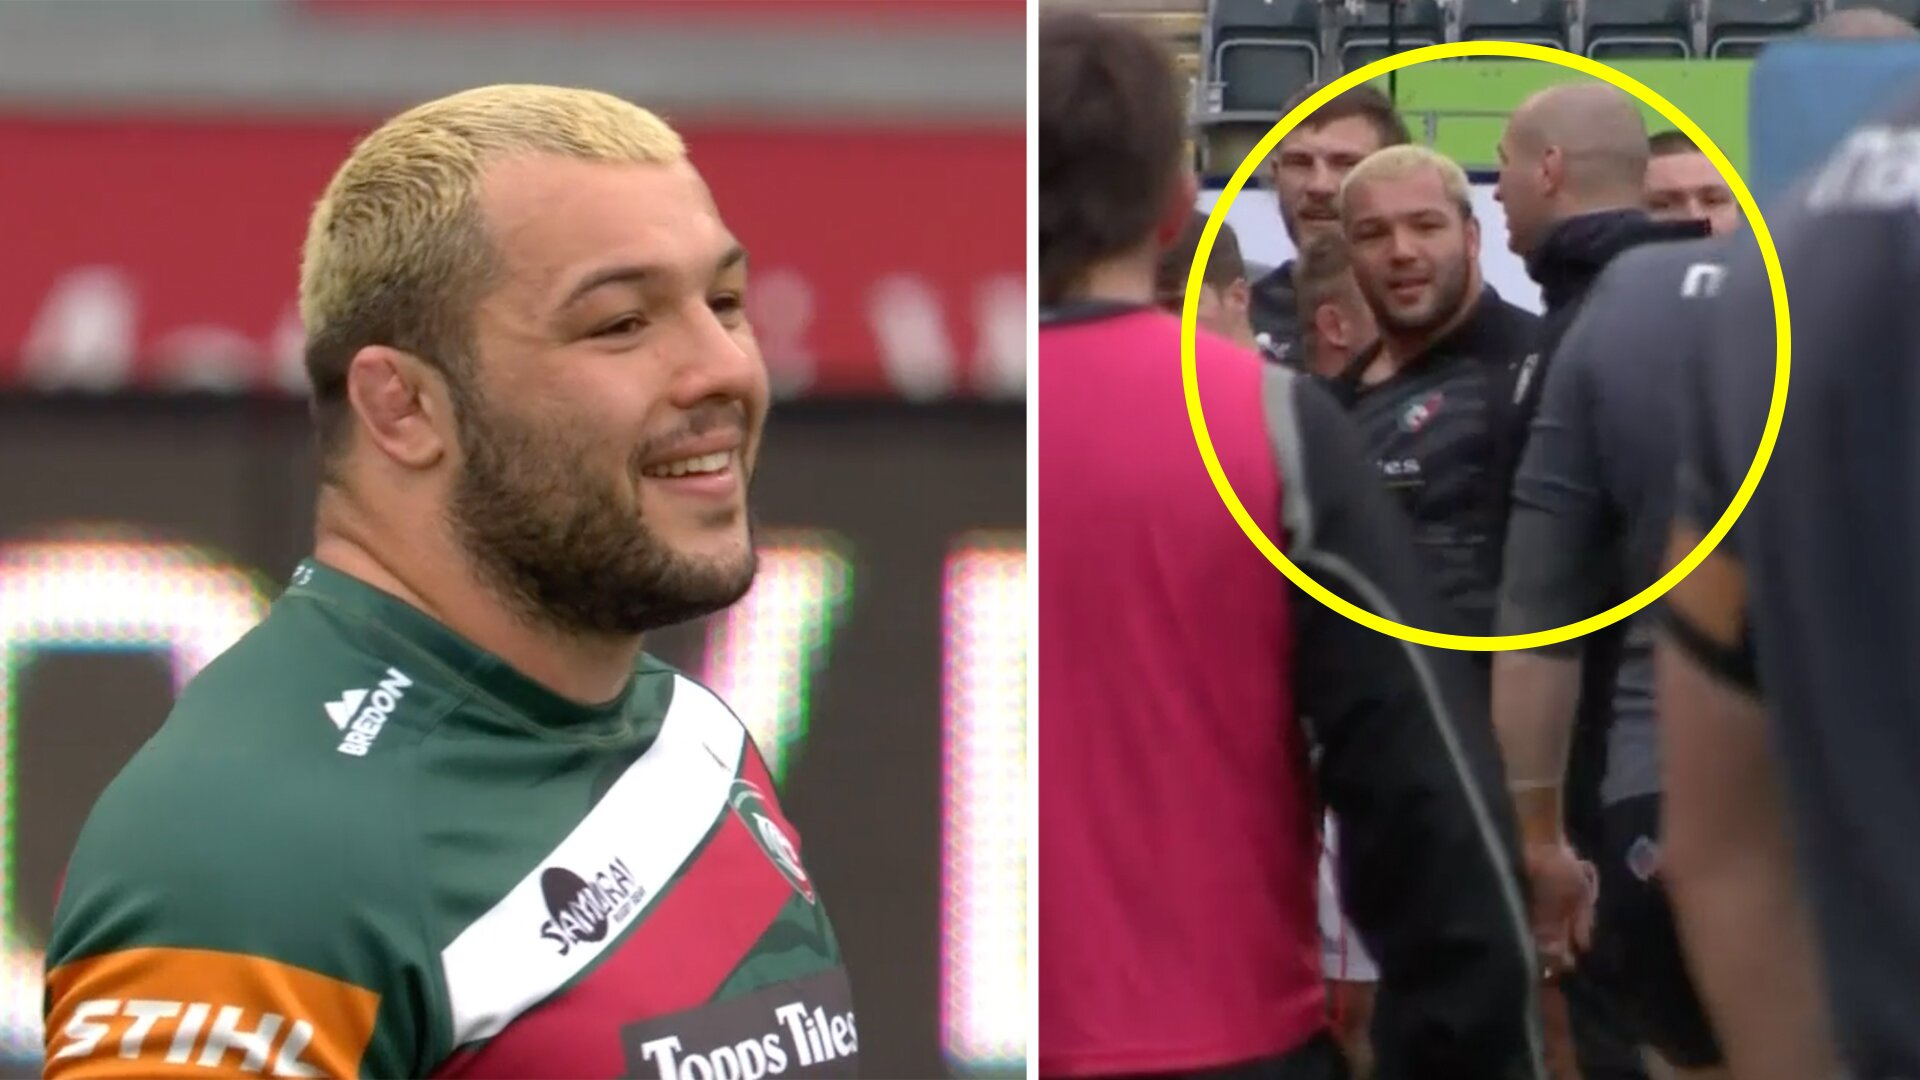 Fan gives story about Ellis Genge which sums up what he is really like off camera